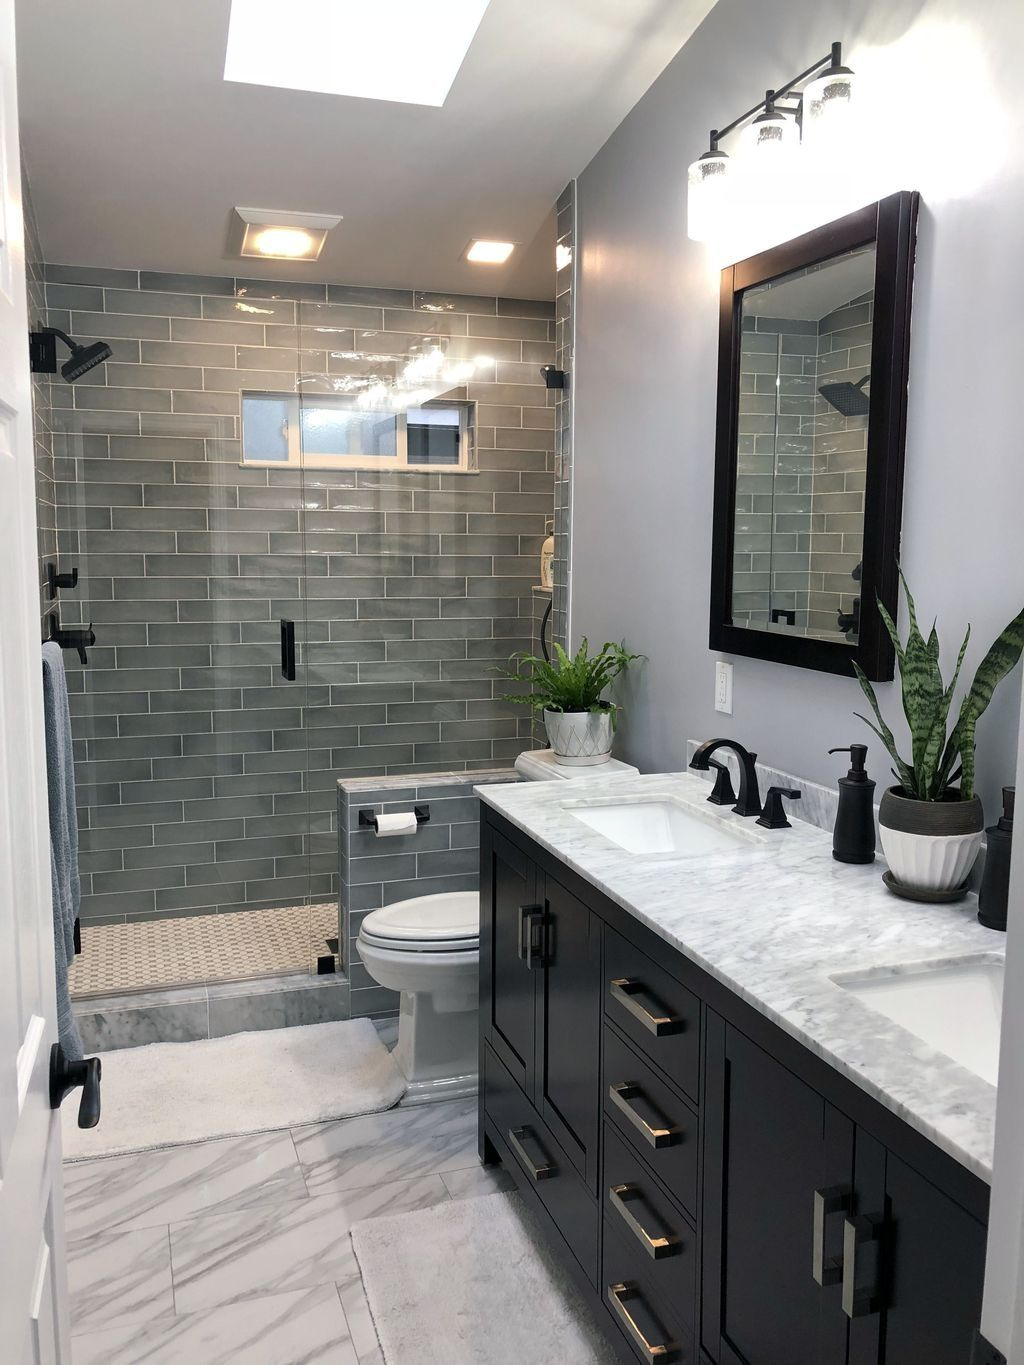 55 Smart Remodel Bathroom Ideas With Low Budget For Home